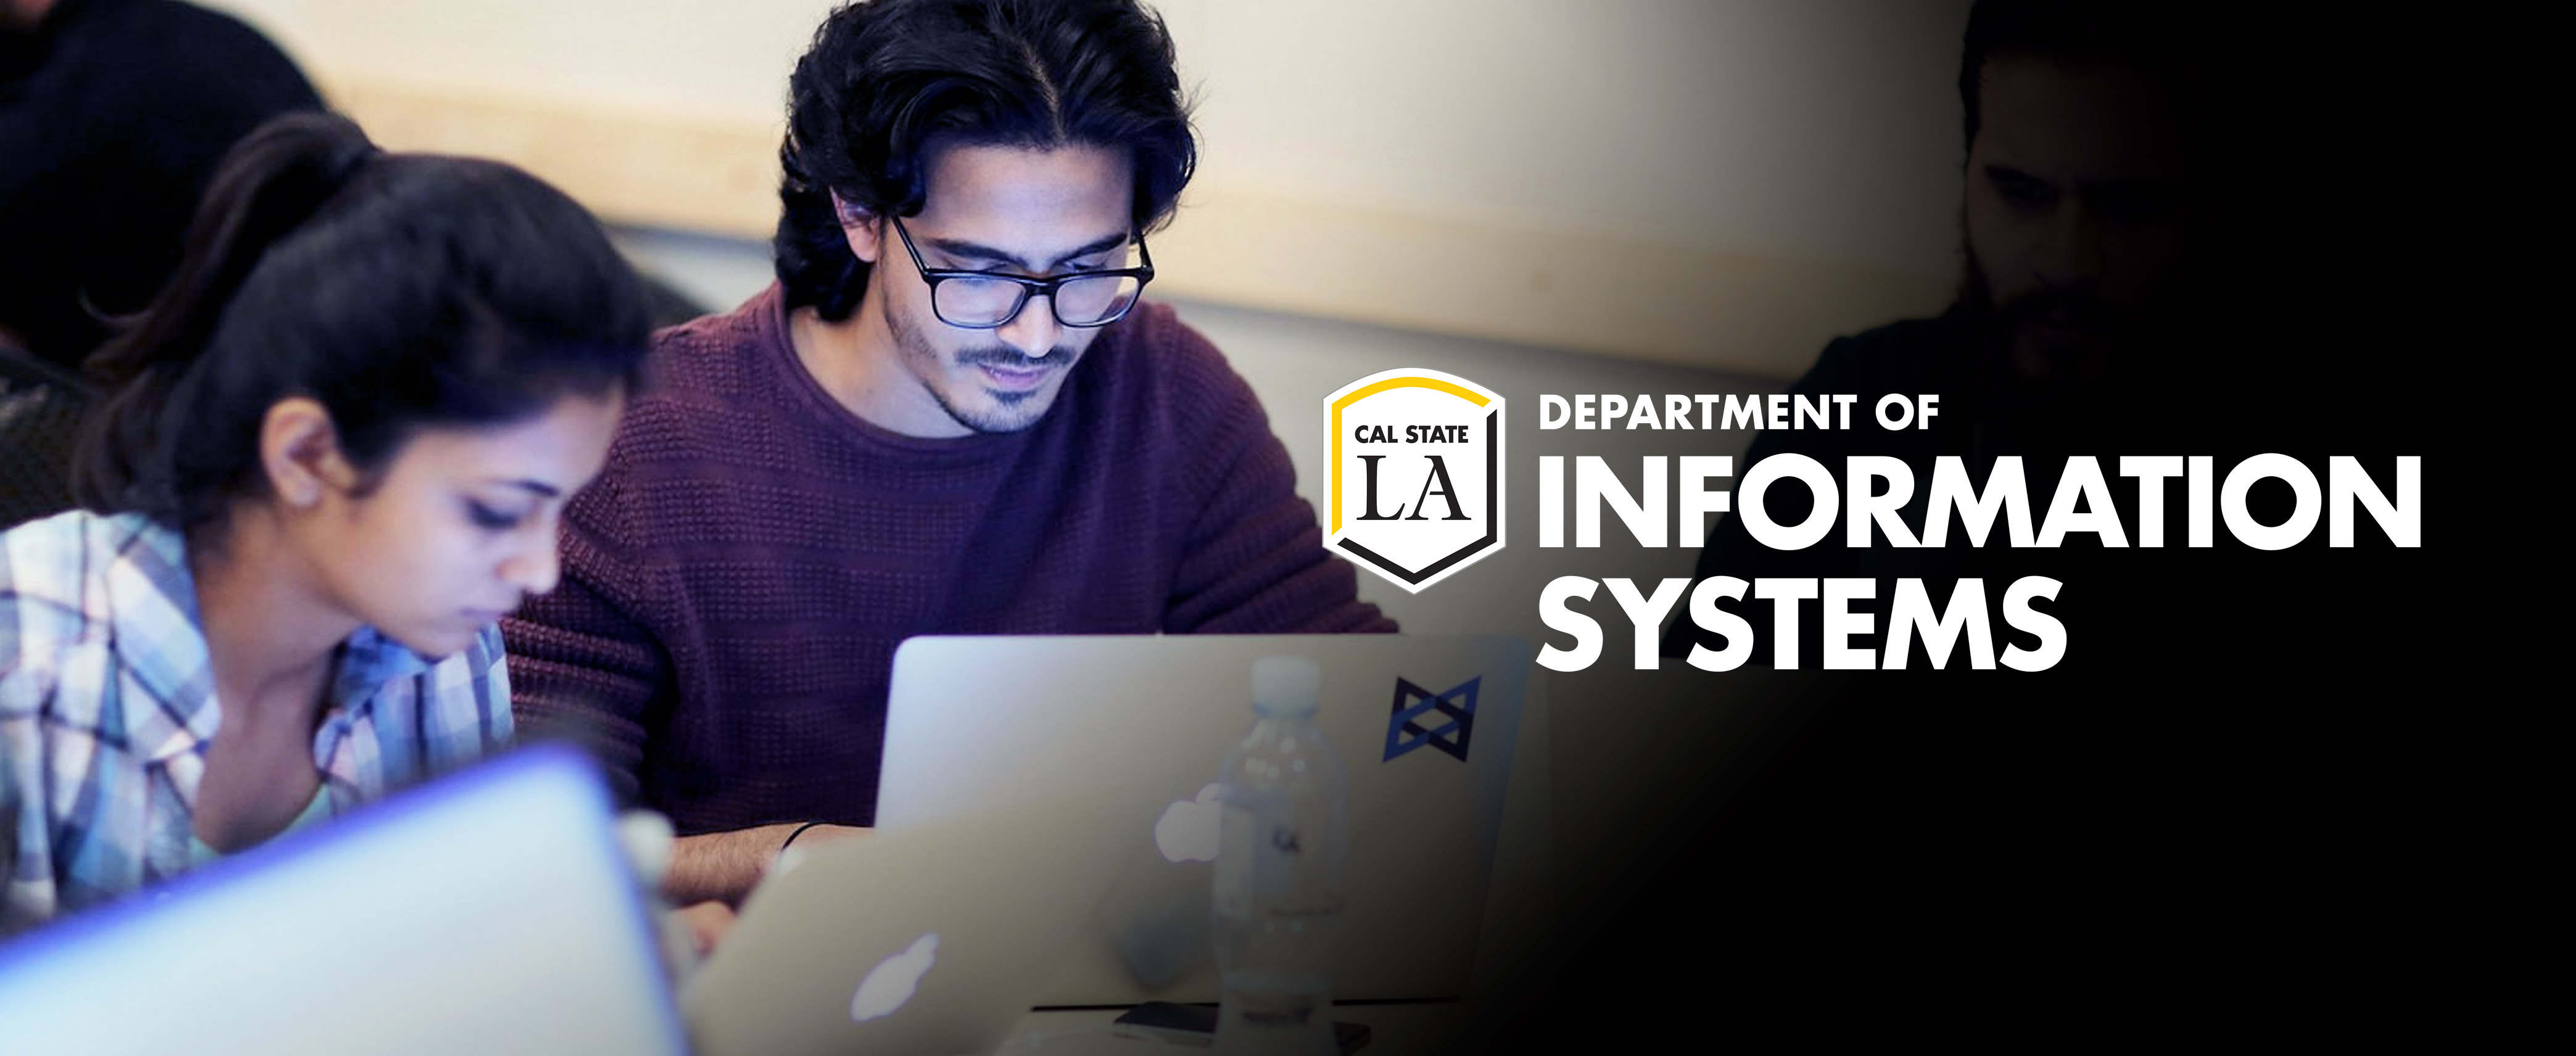 Cal State LA College of Business & Economics | Department of Information Systems